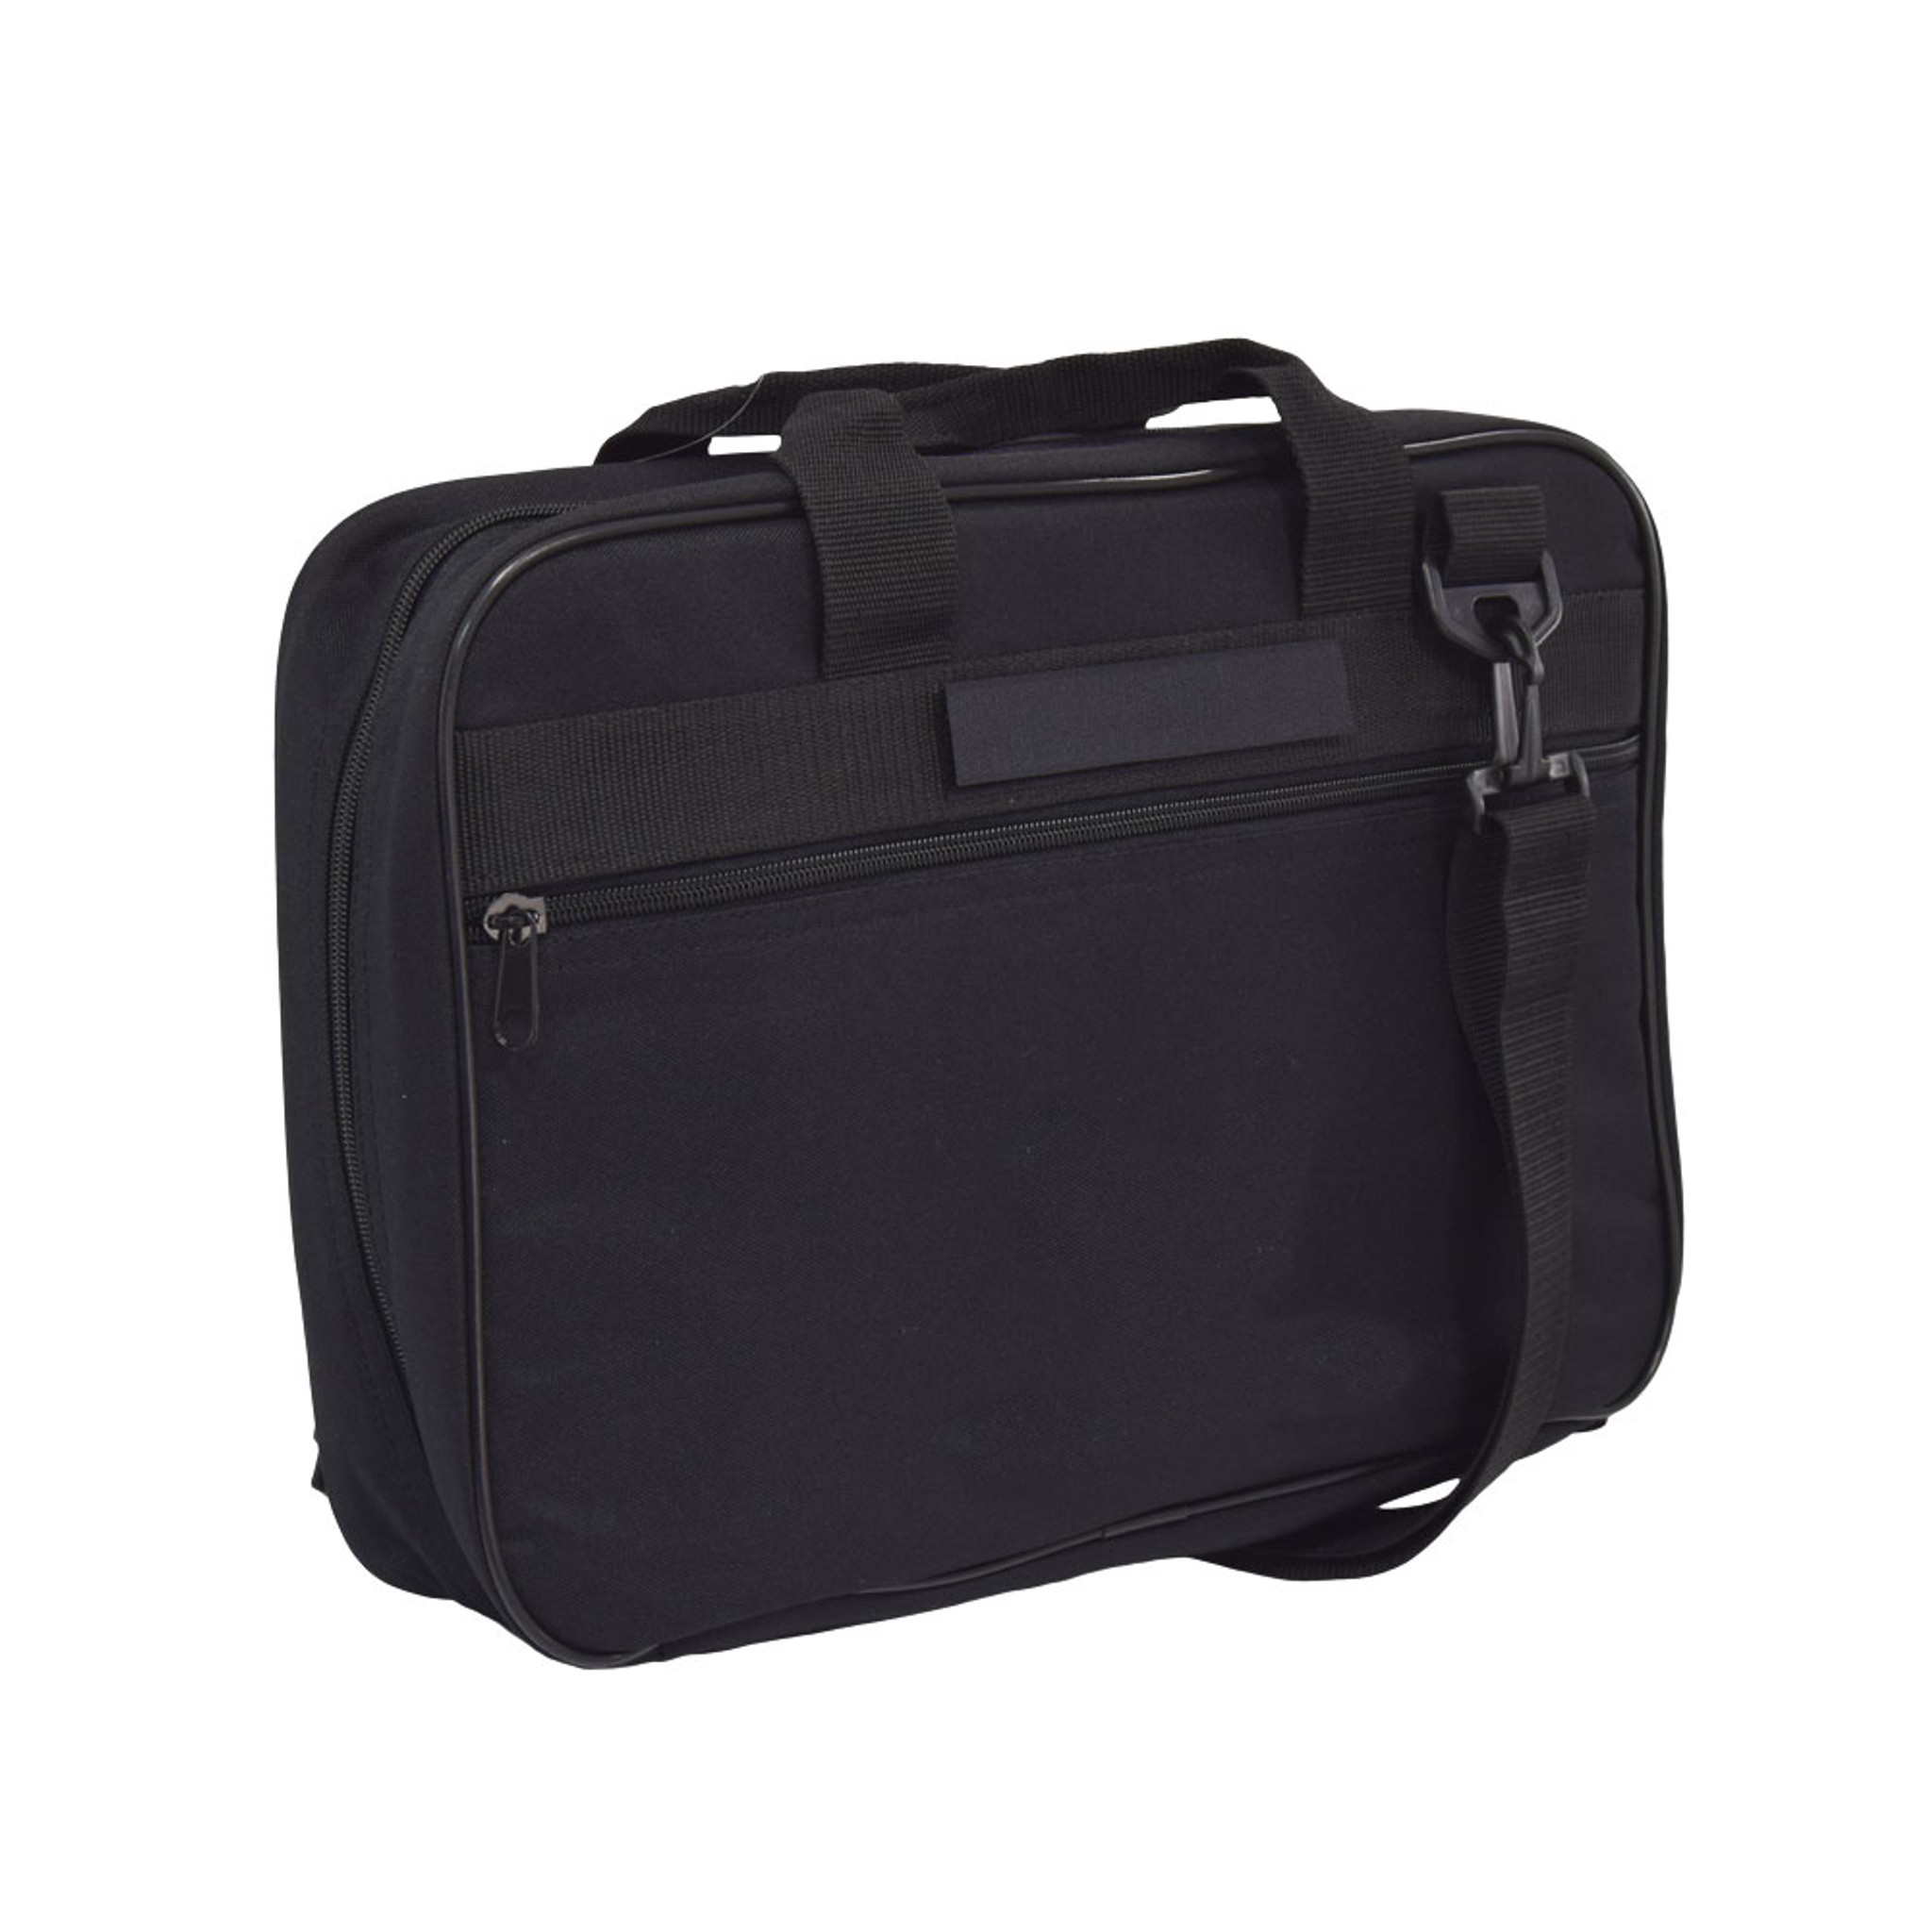 31d7f452d98 PADDED BRIEFCASE   LAPTOP CASE - Flying Circle Gear